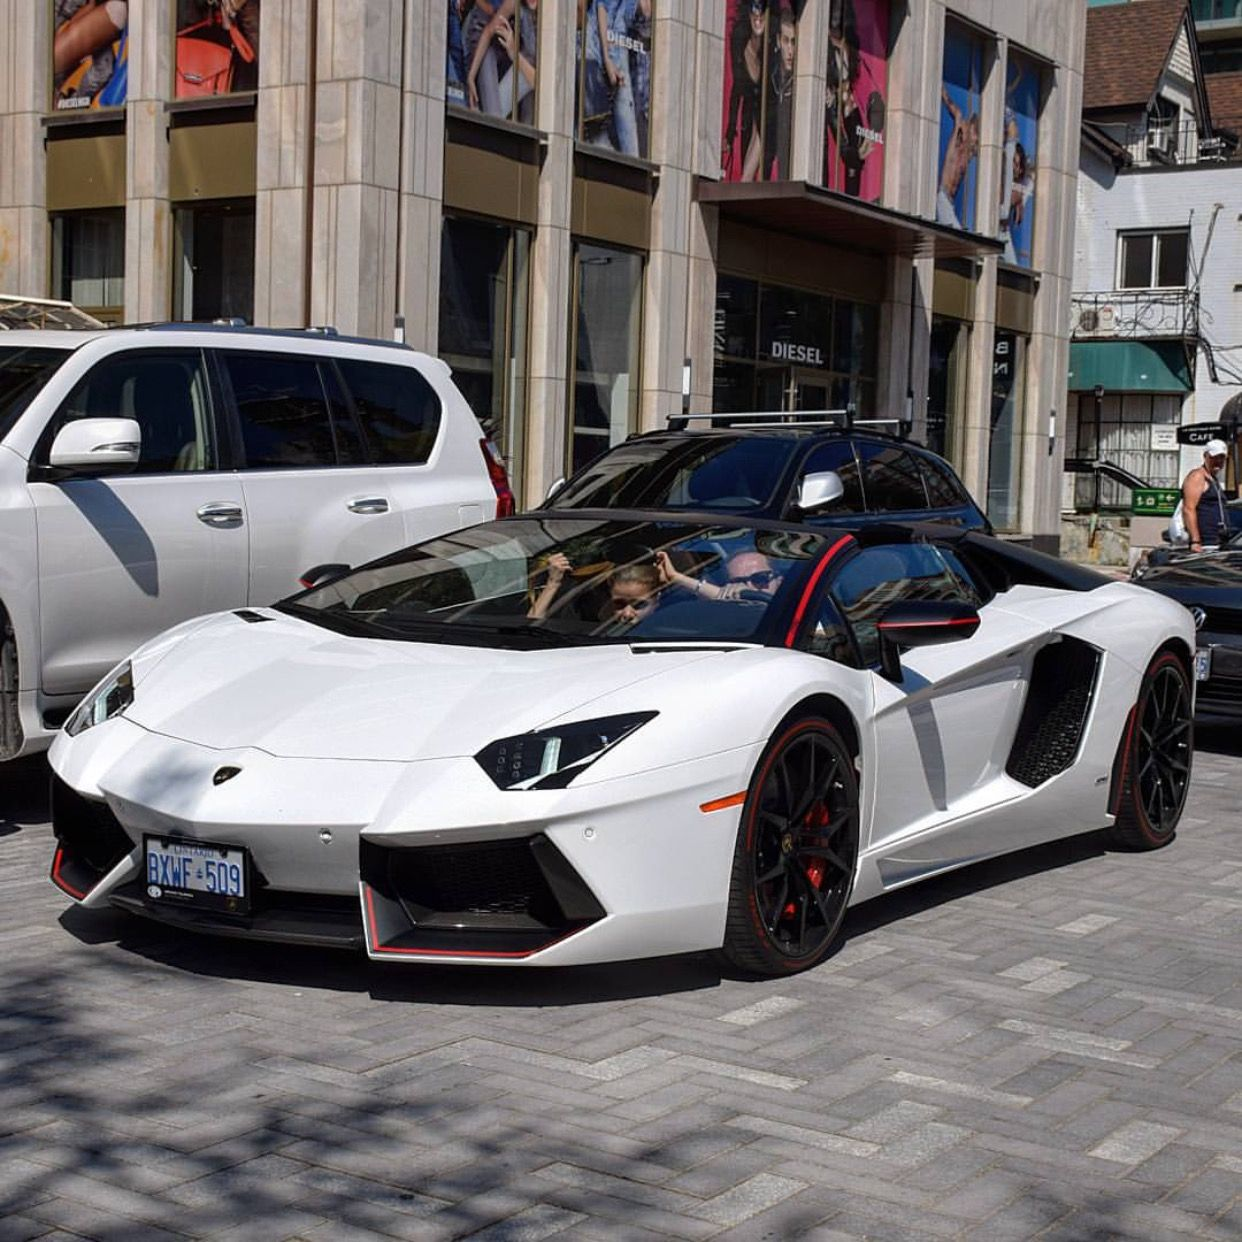 """Lamborghini Aventador Roadster """"Pirelli"""" Edition painted in Bianco Isis w/ red accents Photo taken by: @torontocarspotter on Instagram"""